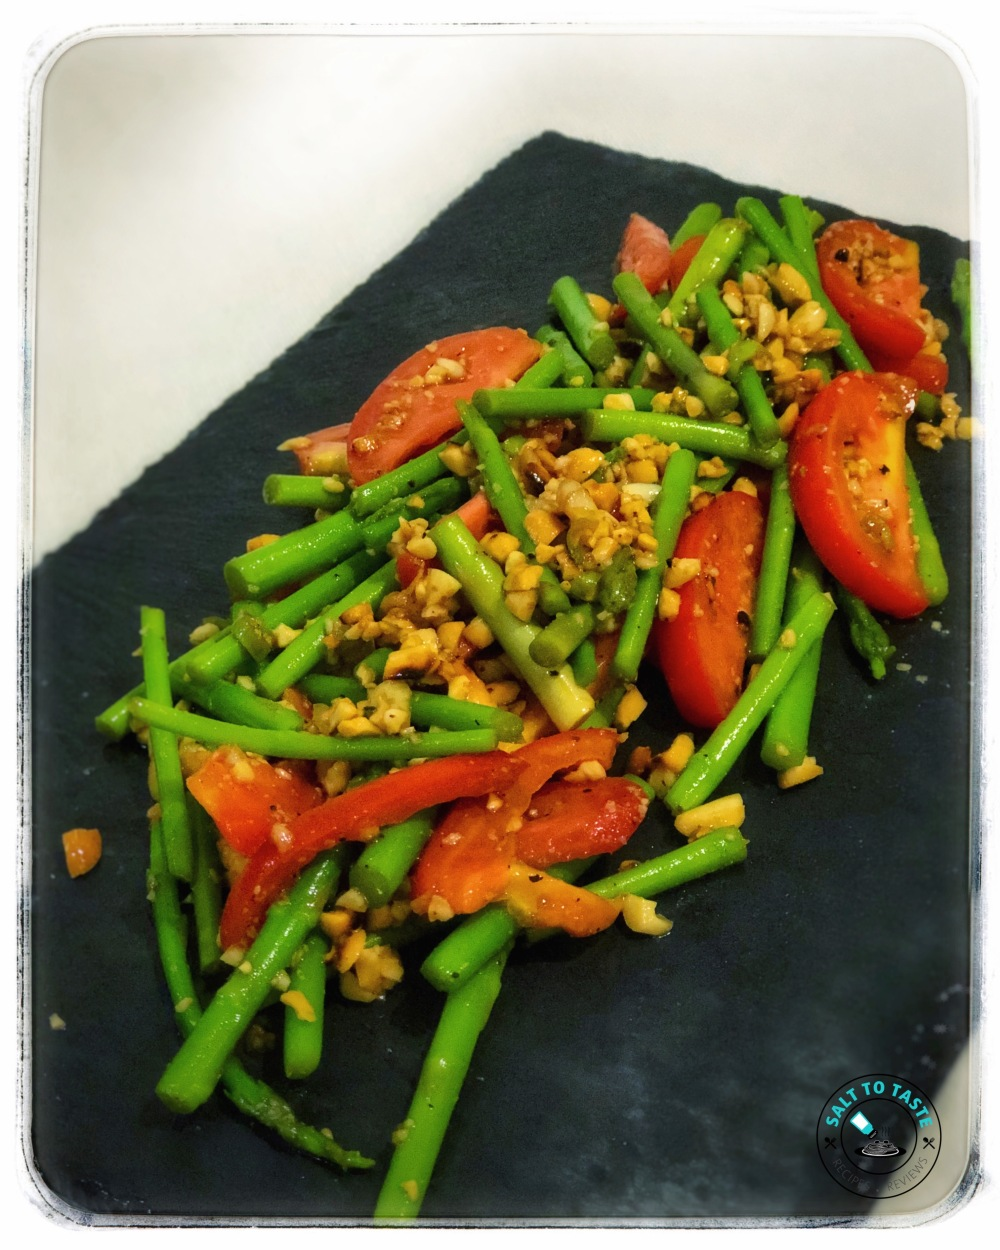 Asparagus in Spicy Peanut Dressing